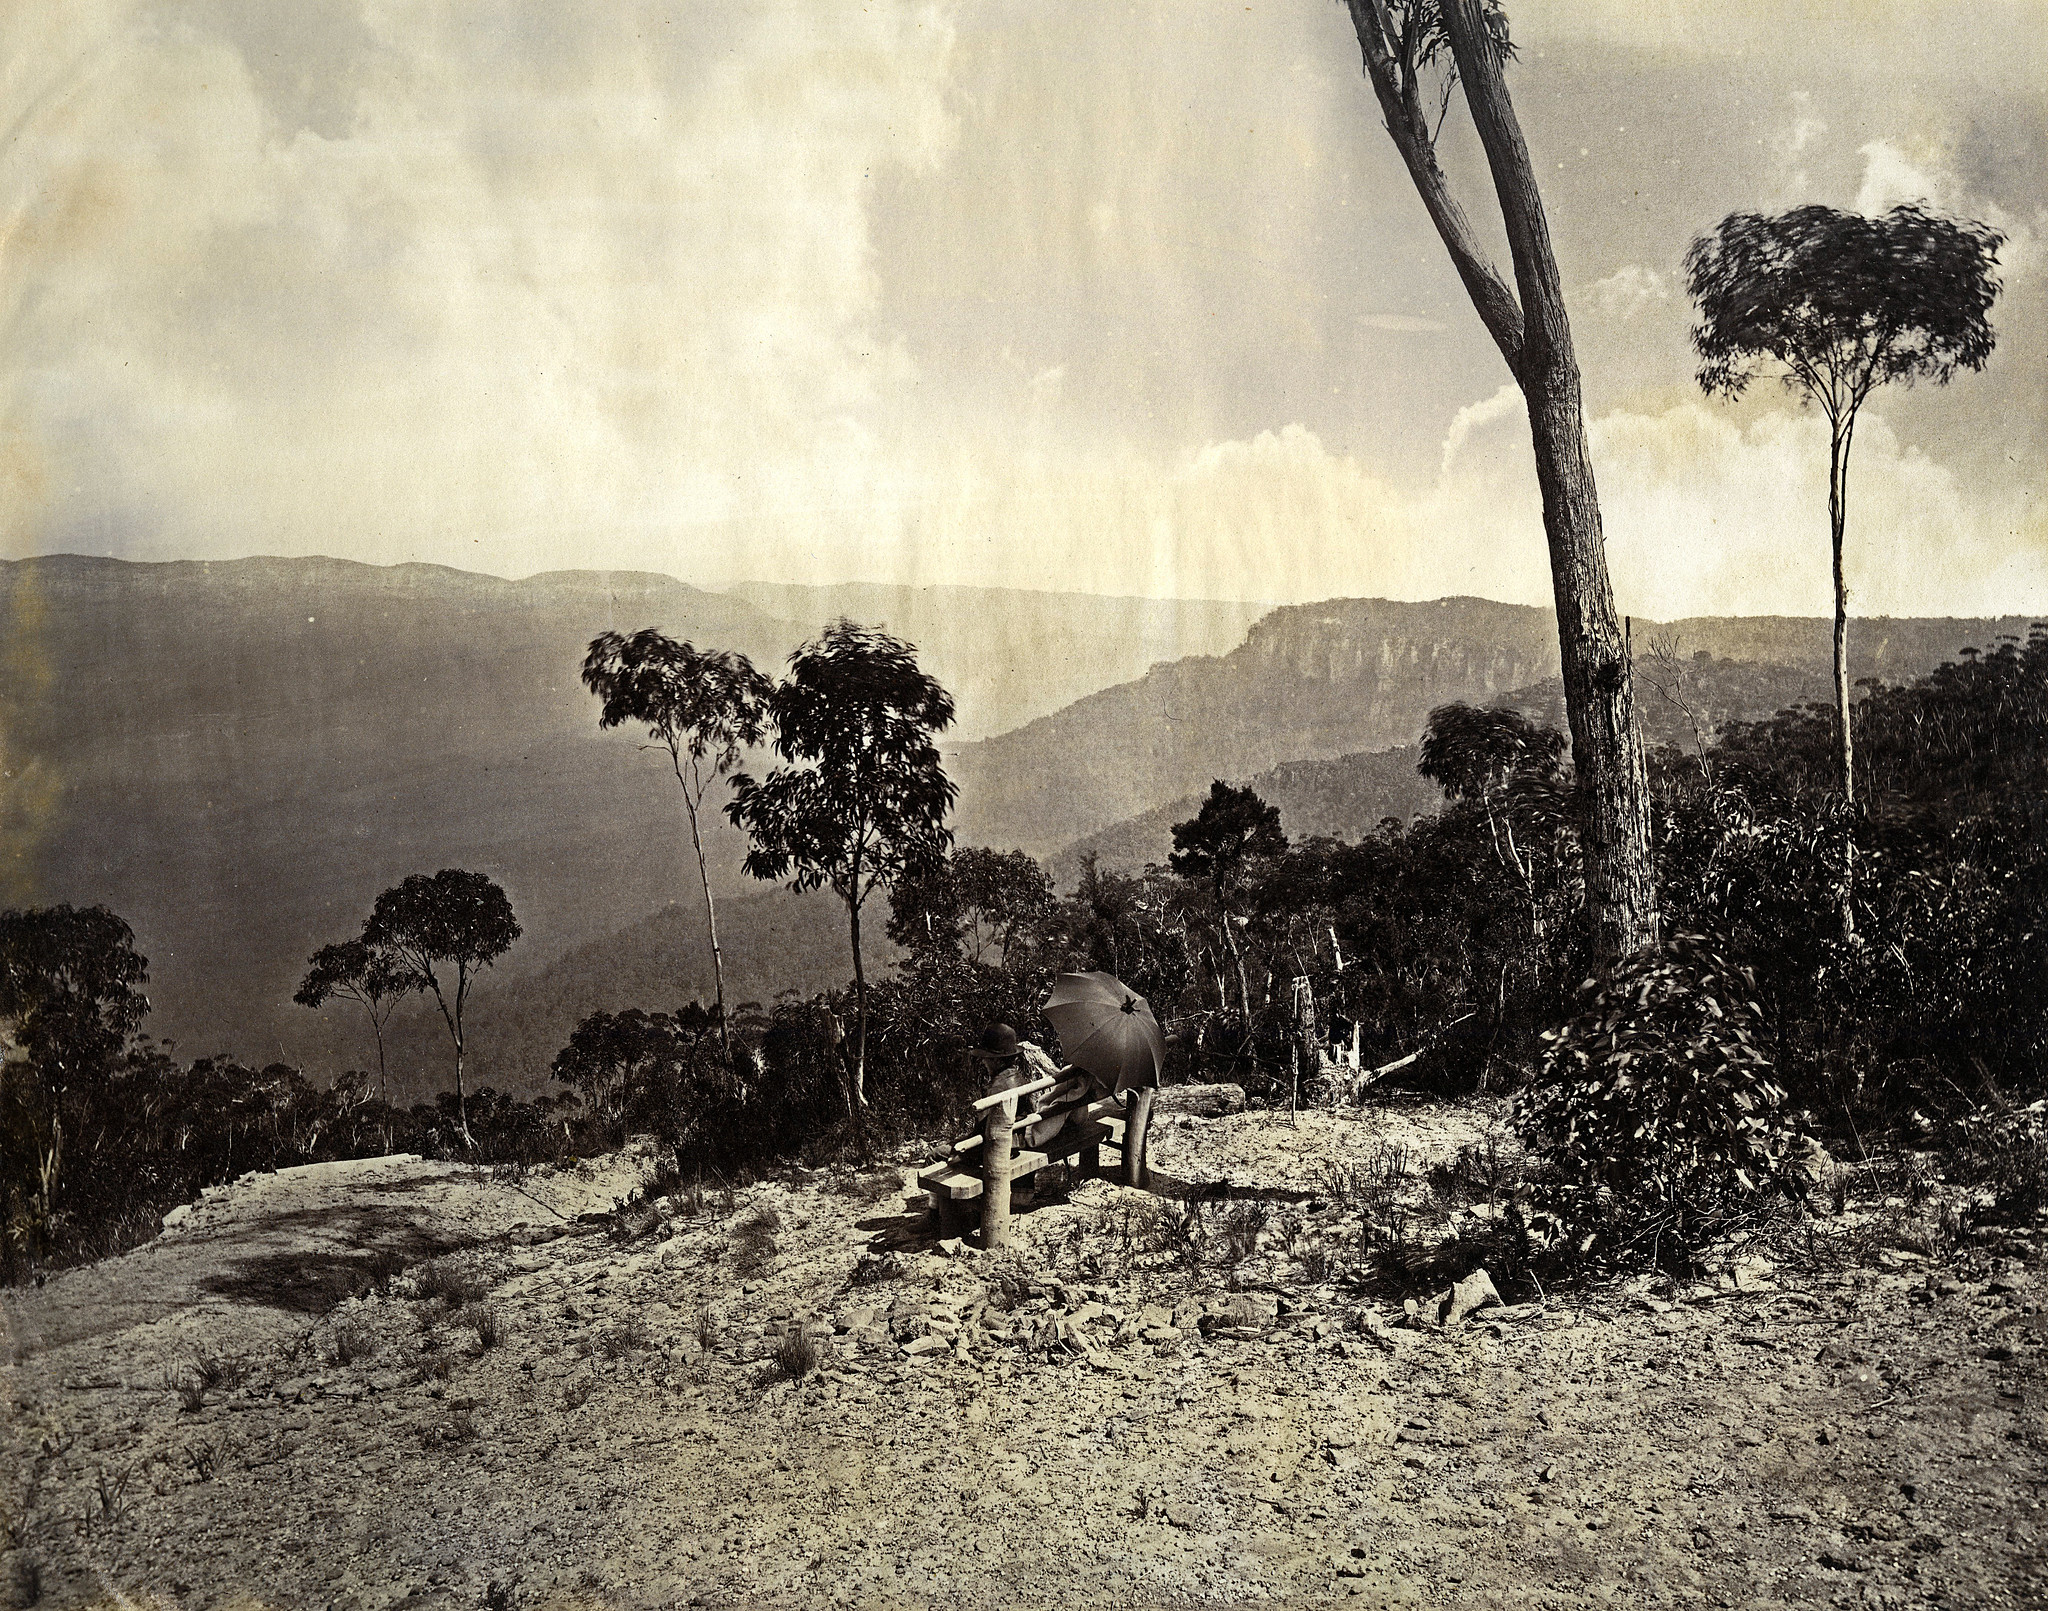 "<p>Date Range: c. 1875     Format: albumen silver photoprint, plate size - 9 ¼"" x 7 ½"" , print size - 230 mm x 192 mm, photographer unidentified.     Location: Wentworth Falls lookout, overlooking Jamison Valley and the waterfall     Licensing: attribution, share alike, creative commons.     Repository: Blue Mountains City Library bmcc.ent.sirsidynix.net.au/client/en_AU/default/     Part of: Local Studies Collection, The J B North Album     Provenance: purchased</p>"